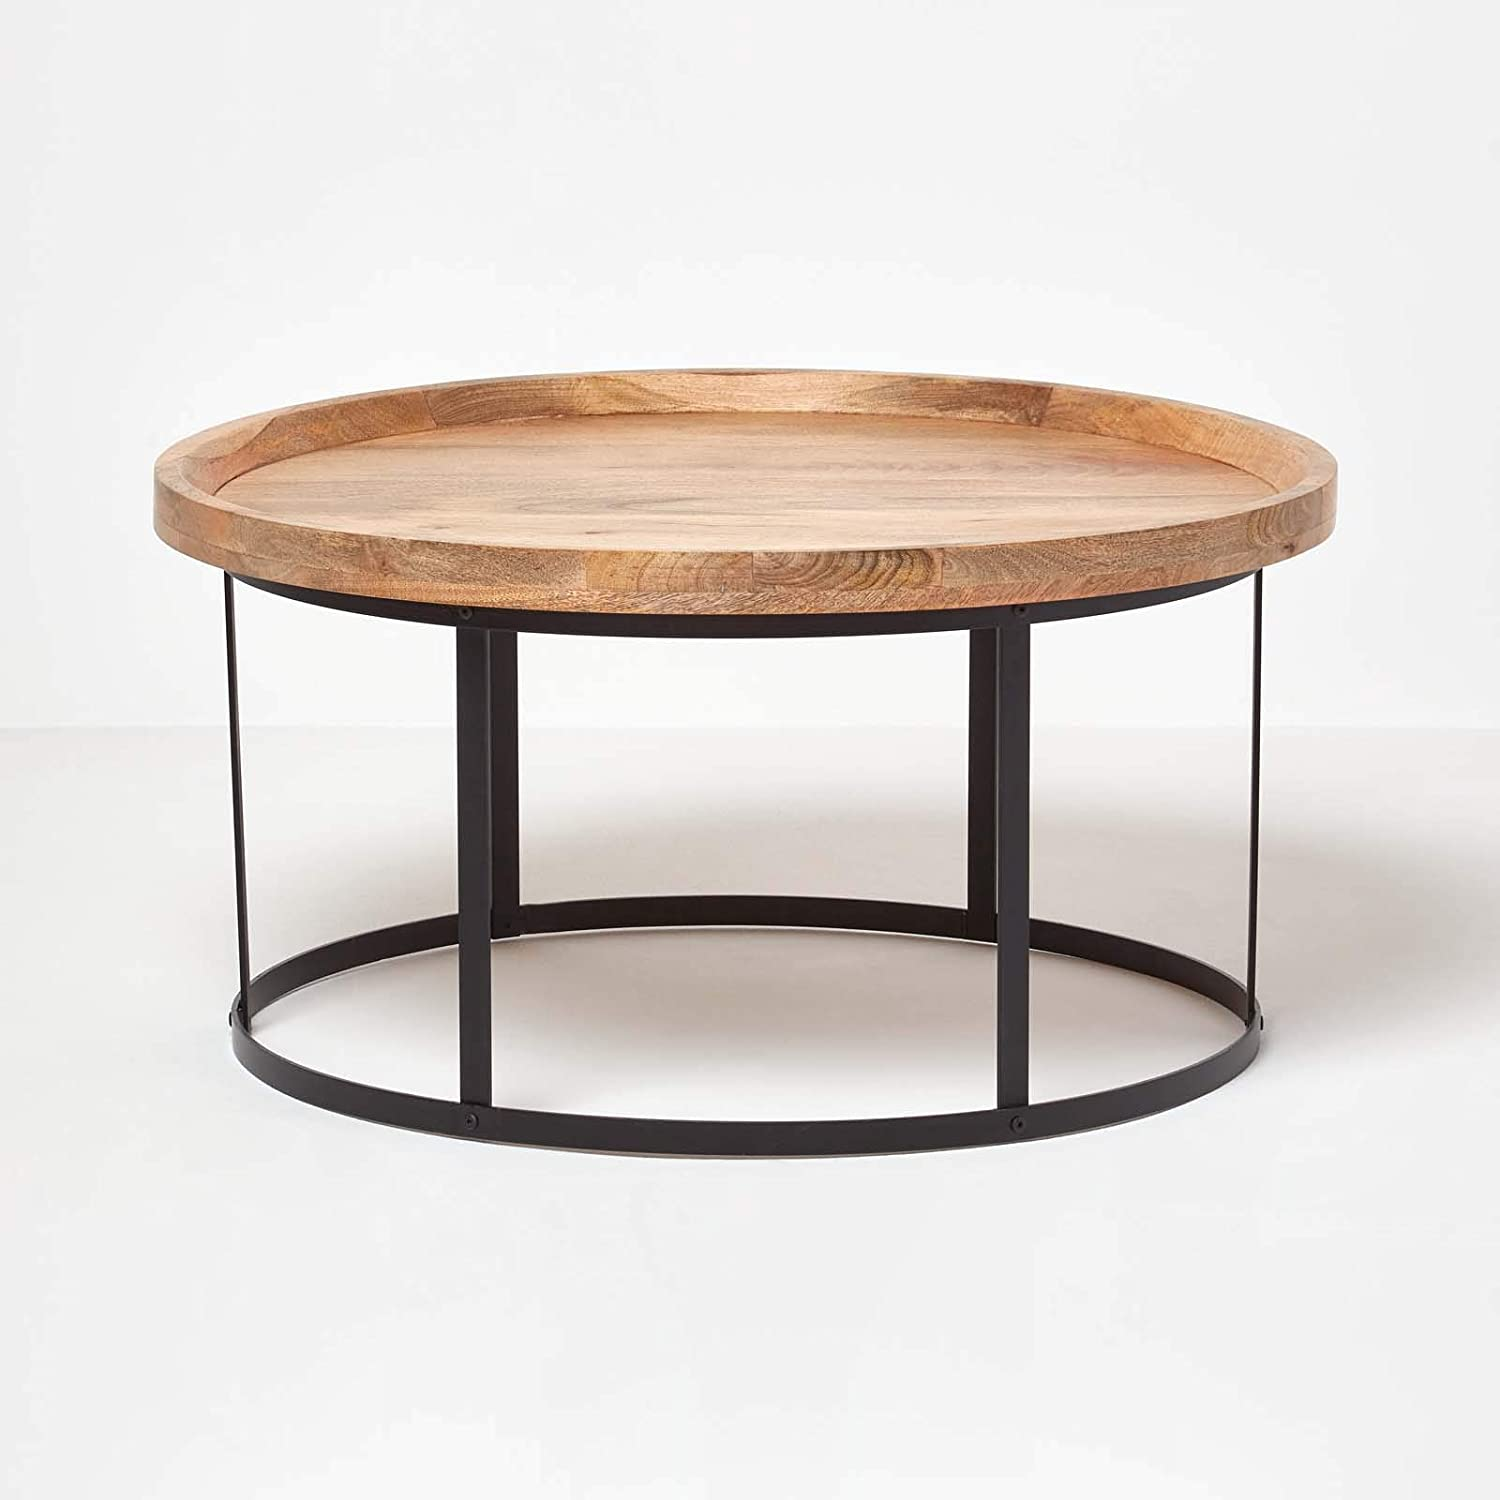 Homescapes Industrial Style Round Coffee Table With Steel Frame